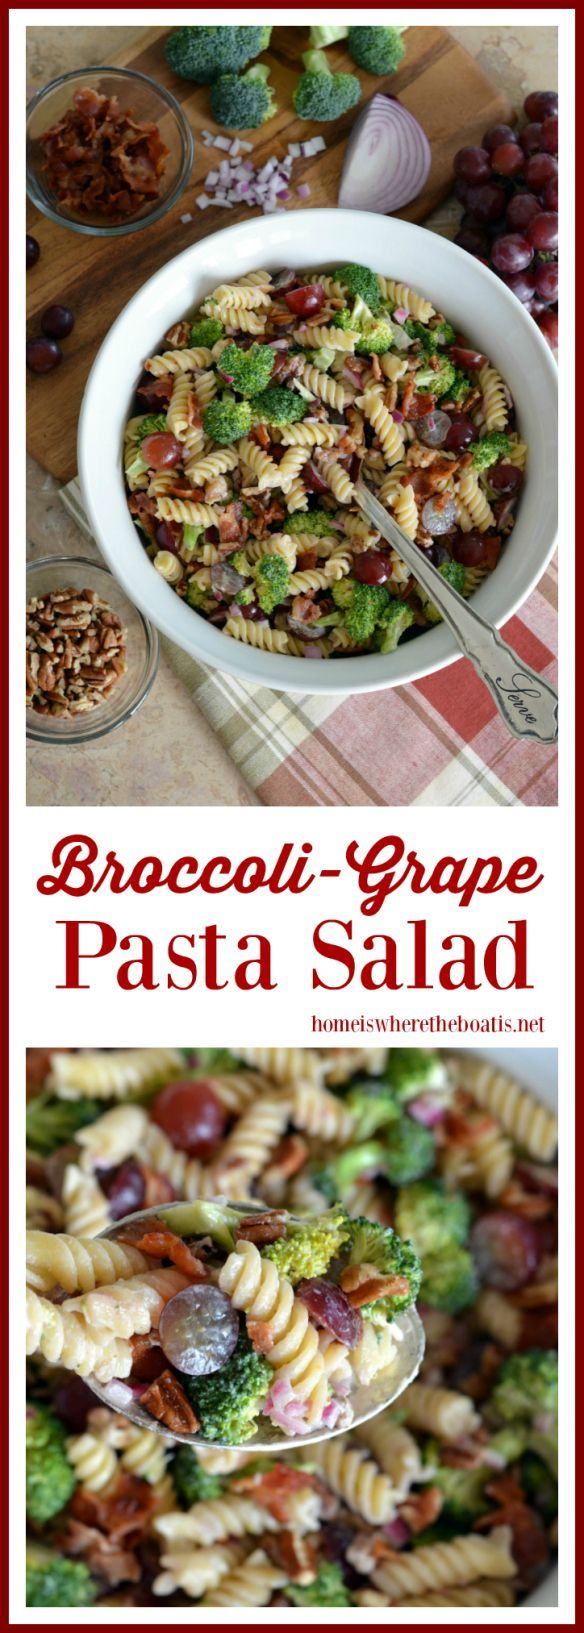 Potluck Broccoli-Grape Pasta Salad #potluckdishesforacrowd Broccoli-Grape Pasta Salad! A crowd-pleasing medley of sweet, tangy, crunchy and salty with the addition of toasted pecans and bacon. Perfect for your potluck or picnic! | homeiswheretheboatis.net #recipe